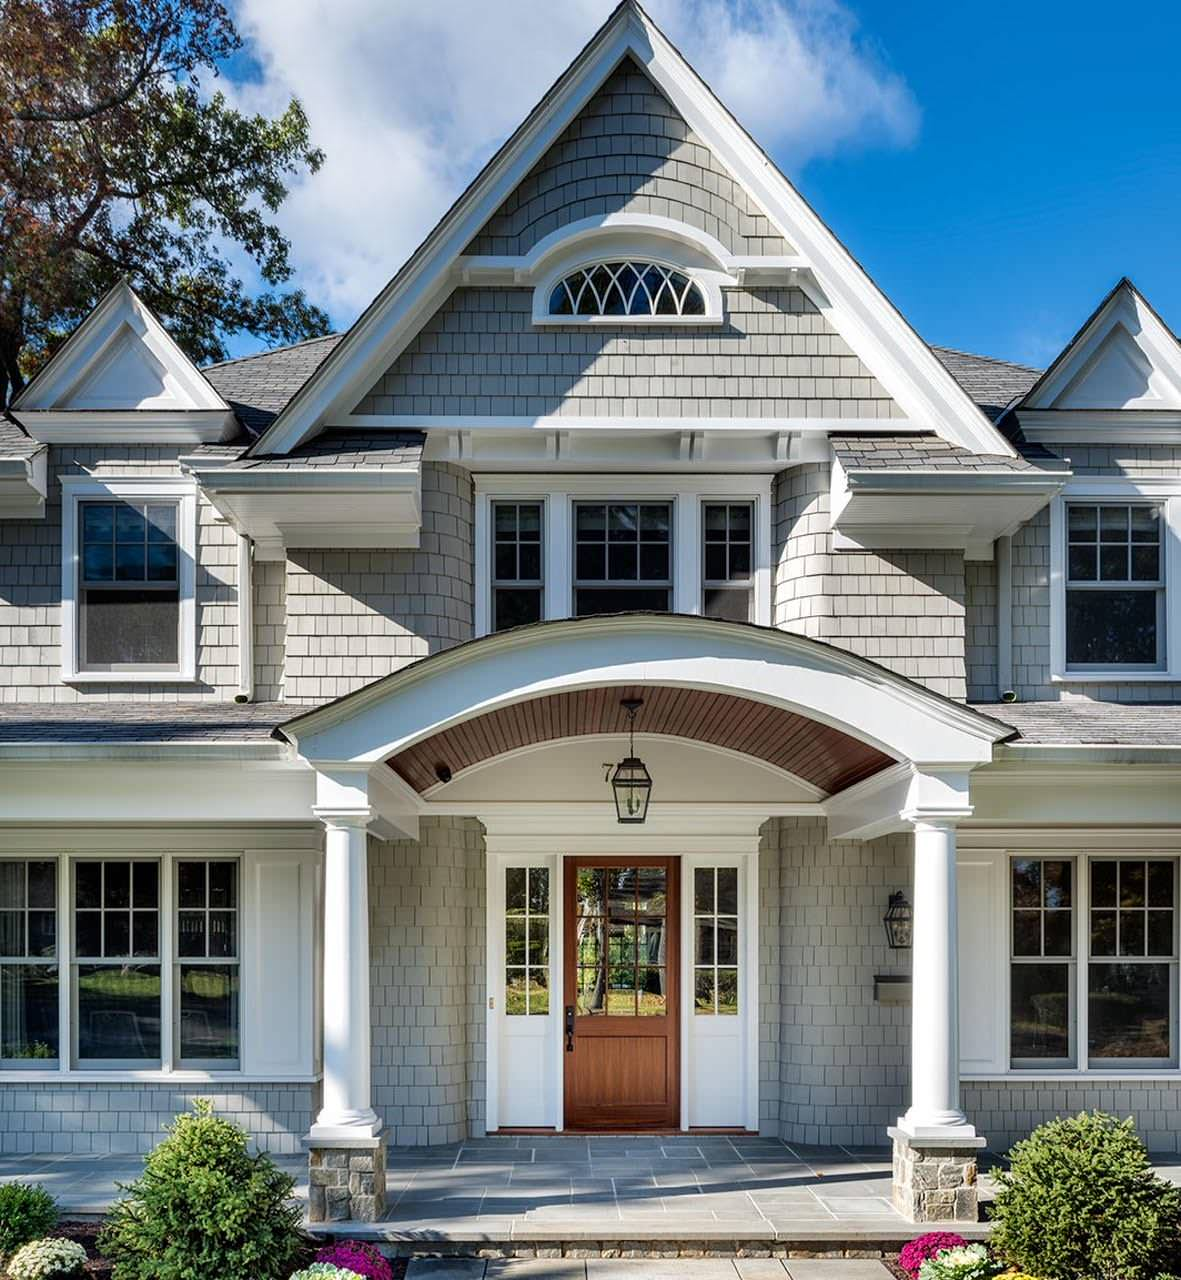 Private Shingle Style Home In Bergen County, NJ